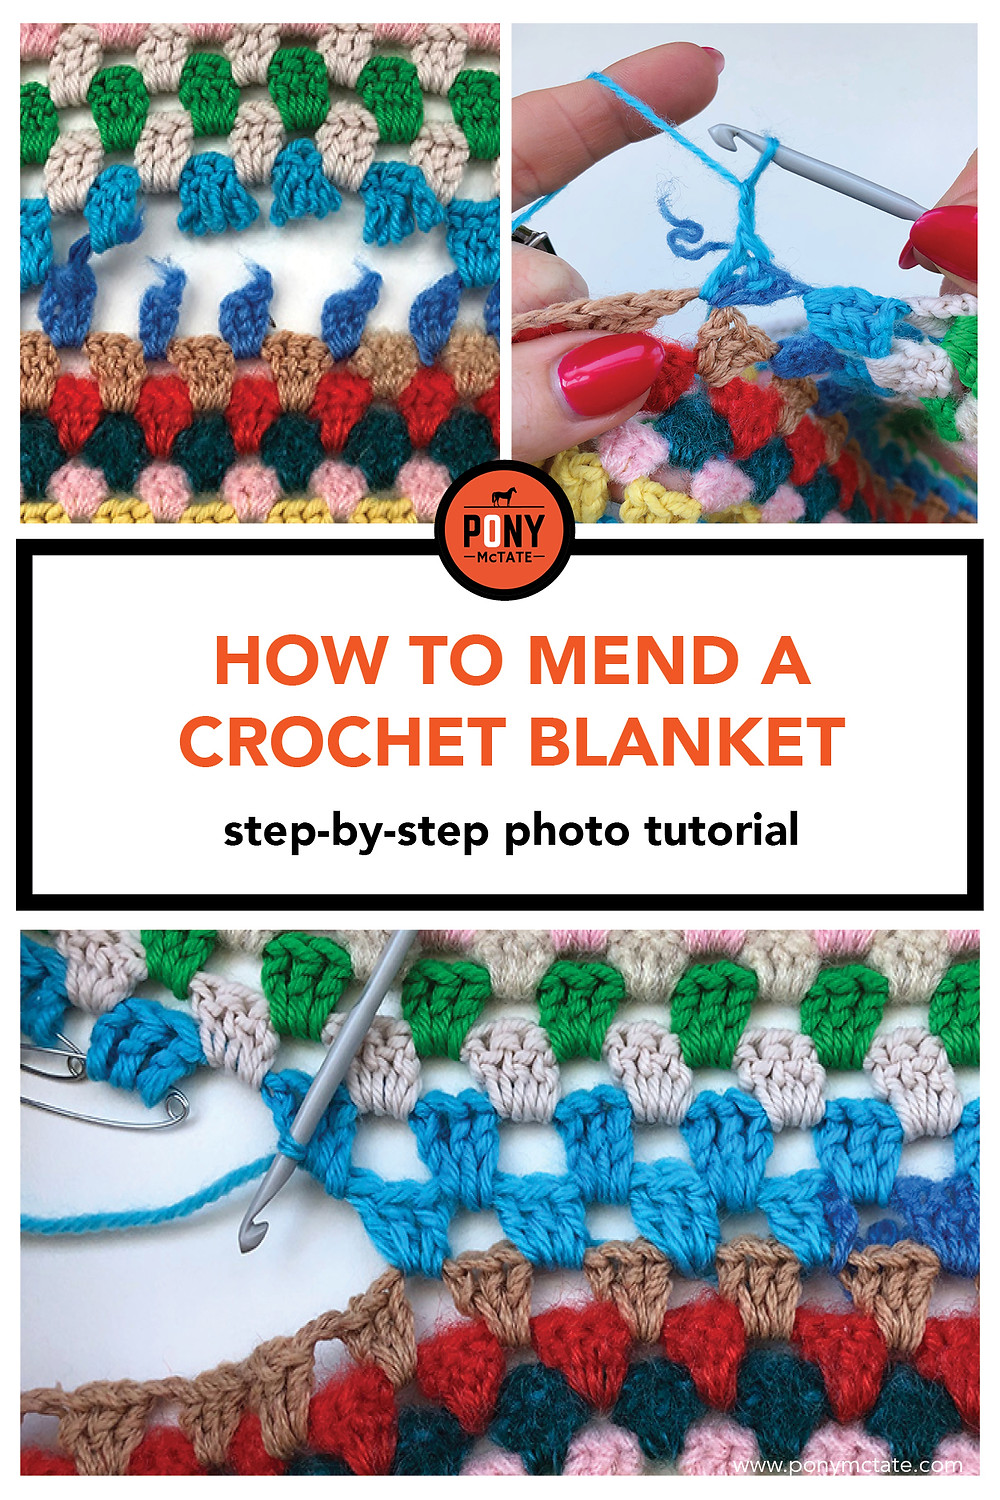 How to mend a crochet blanket // photo tutorial // Pony McTate